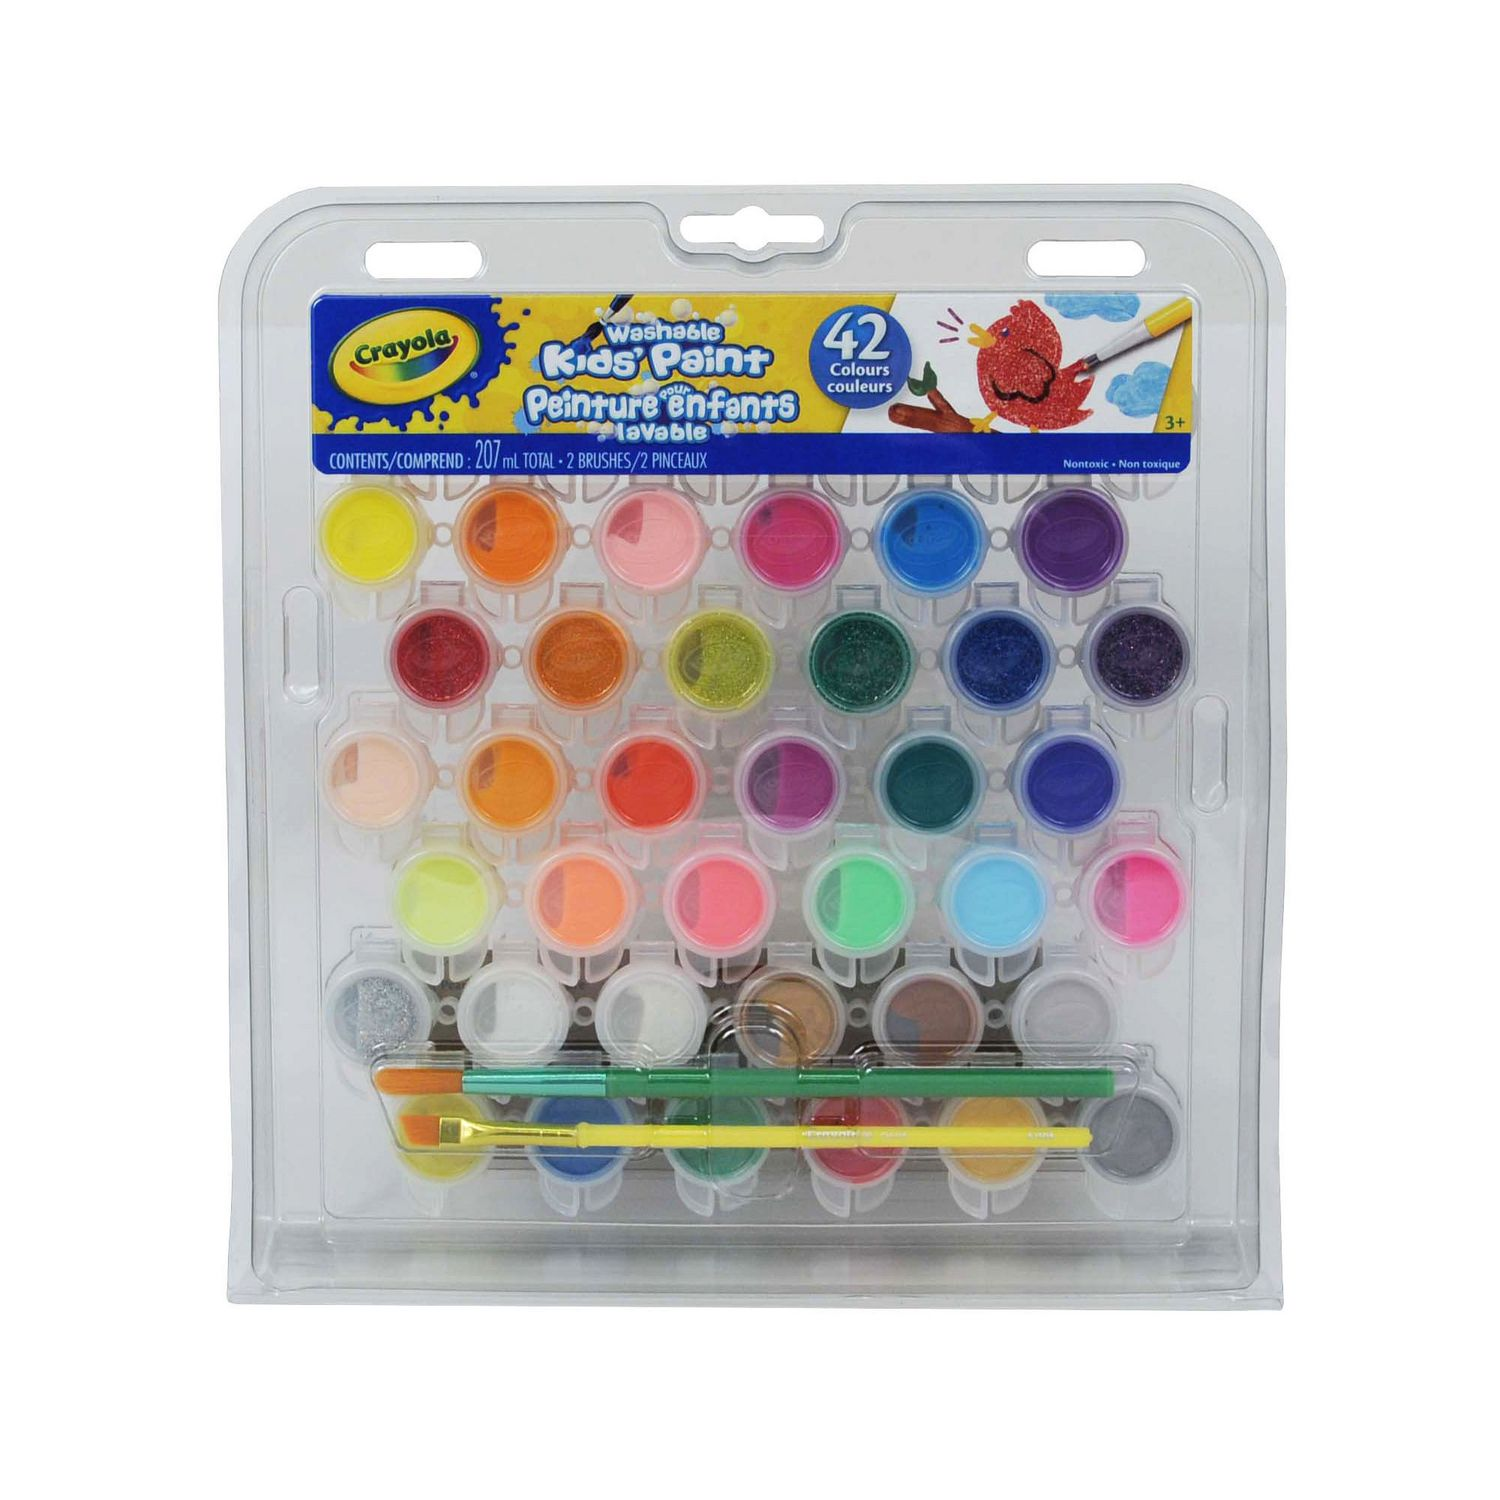 ARTS CRAFTS PLAY BRUSH WATER COLOUR NON-TOXIC PAINTS KID CHILDREN PAINTING SET